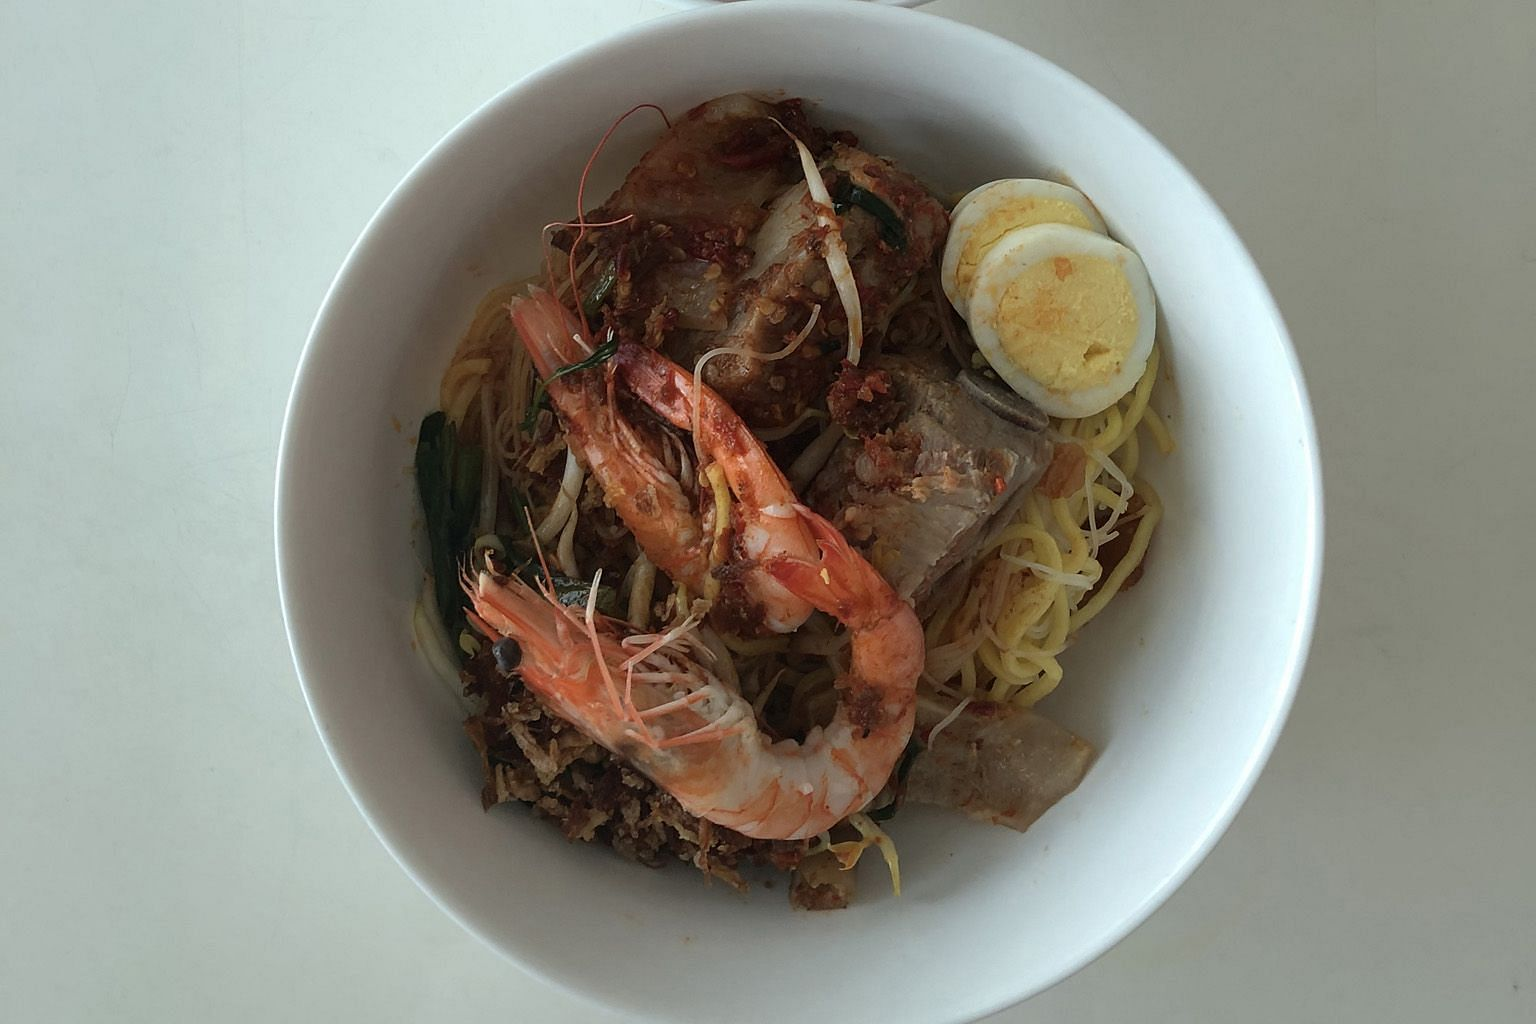 The 3 Combination Prawn Noodle comes with two crunchy and sweet mid-sized prawns.